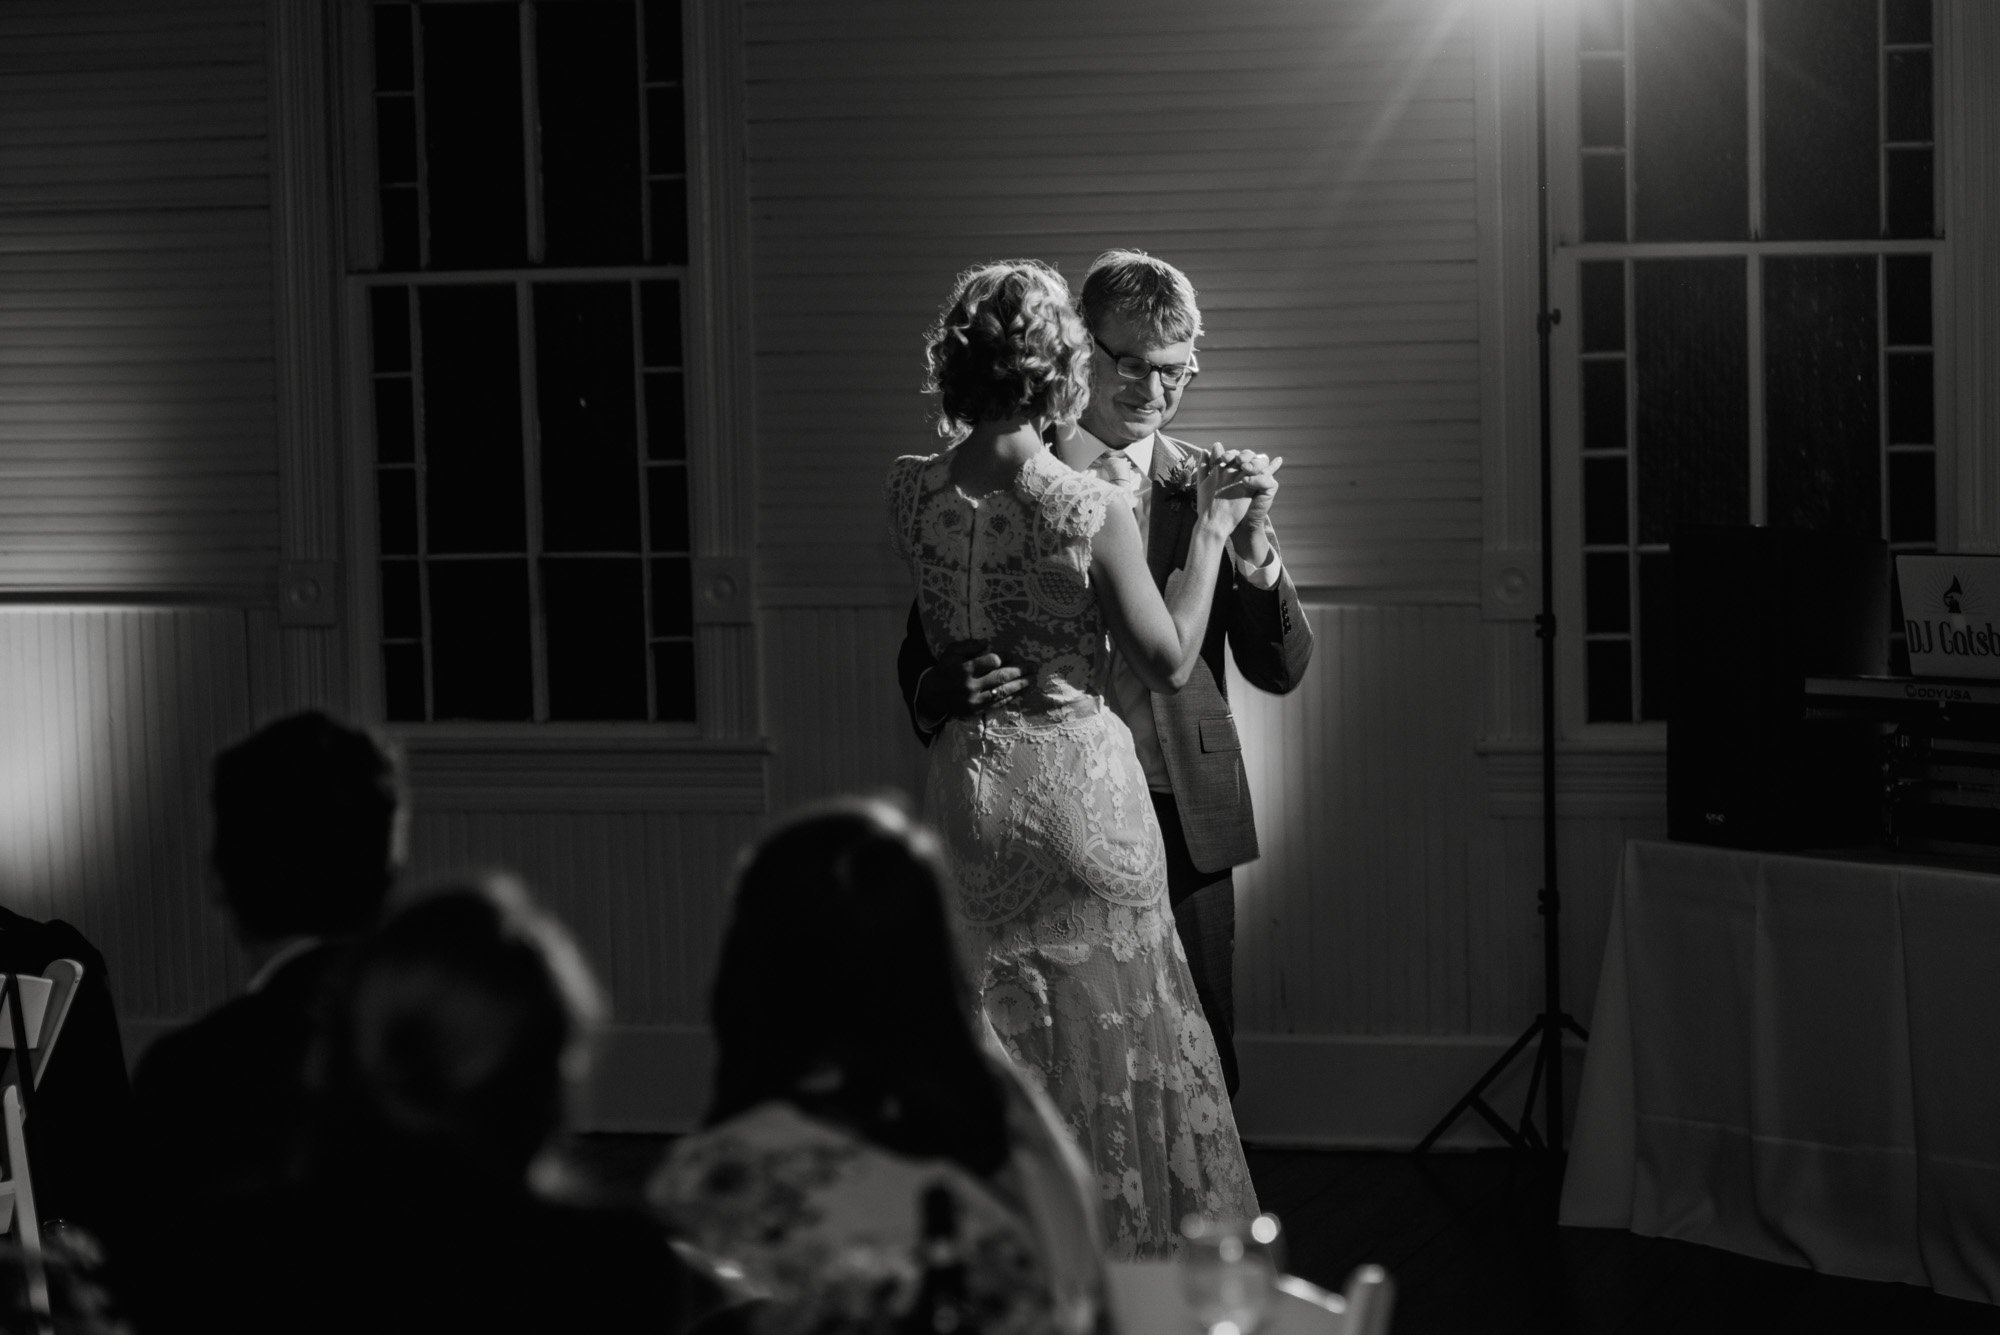 first dance together under the spotlight at a small wedding venue in south austin